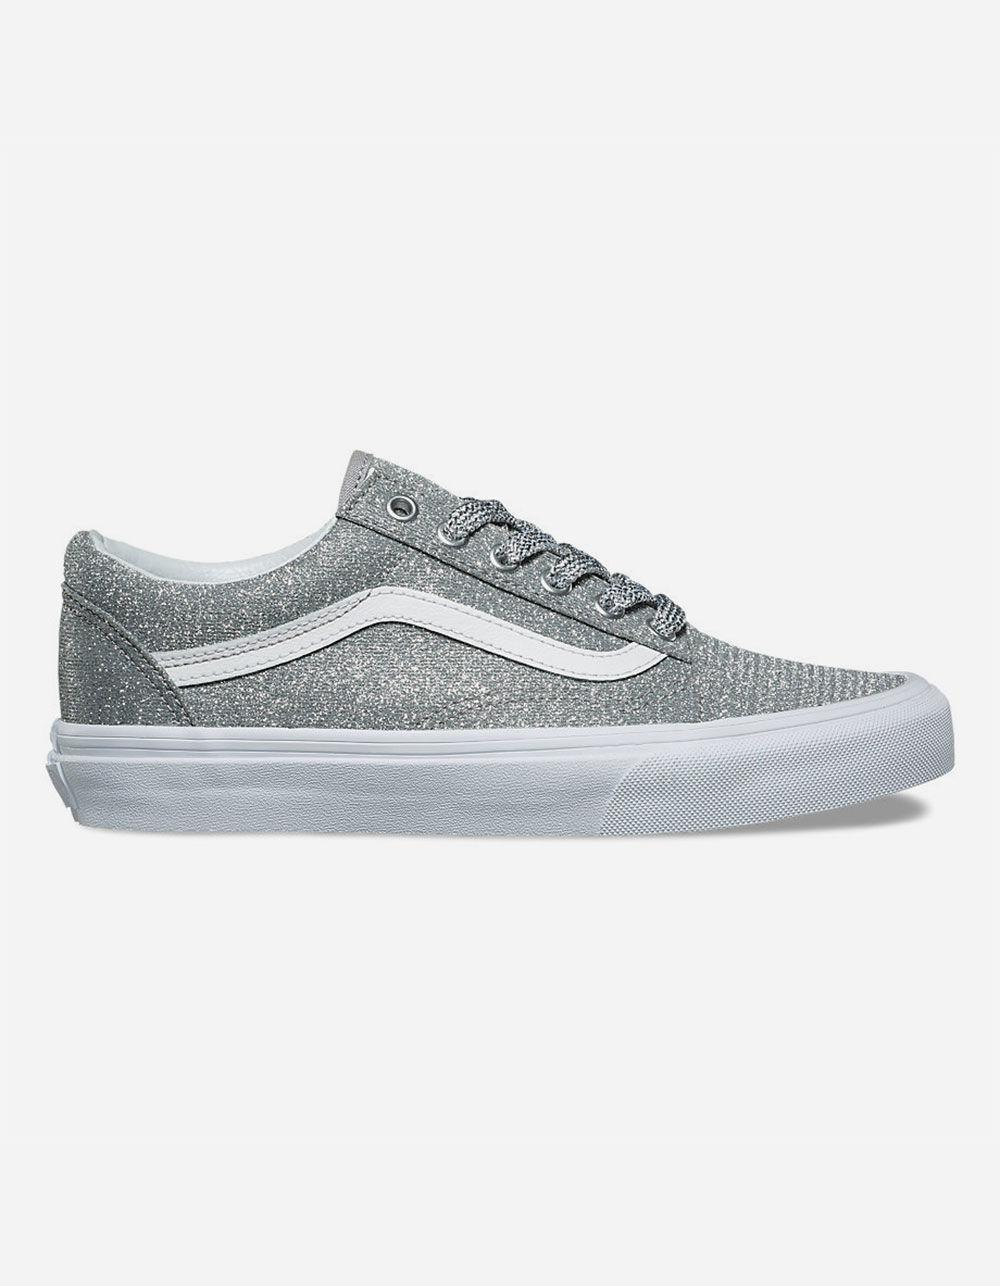 4fd43ca2bd Lyst - Vans Old Skool Lurex Silver   True White Womens Shoes in Metallic